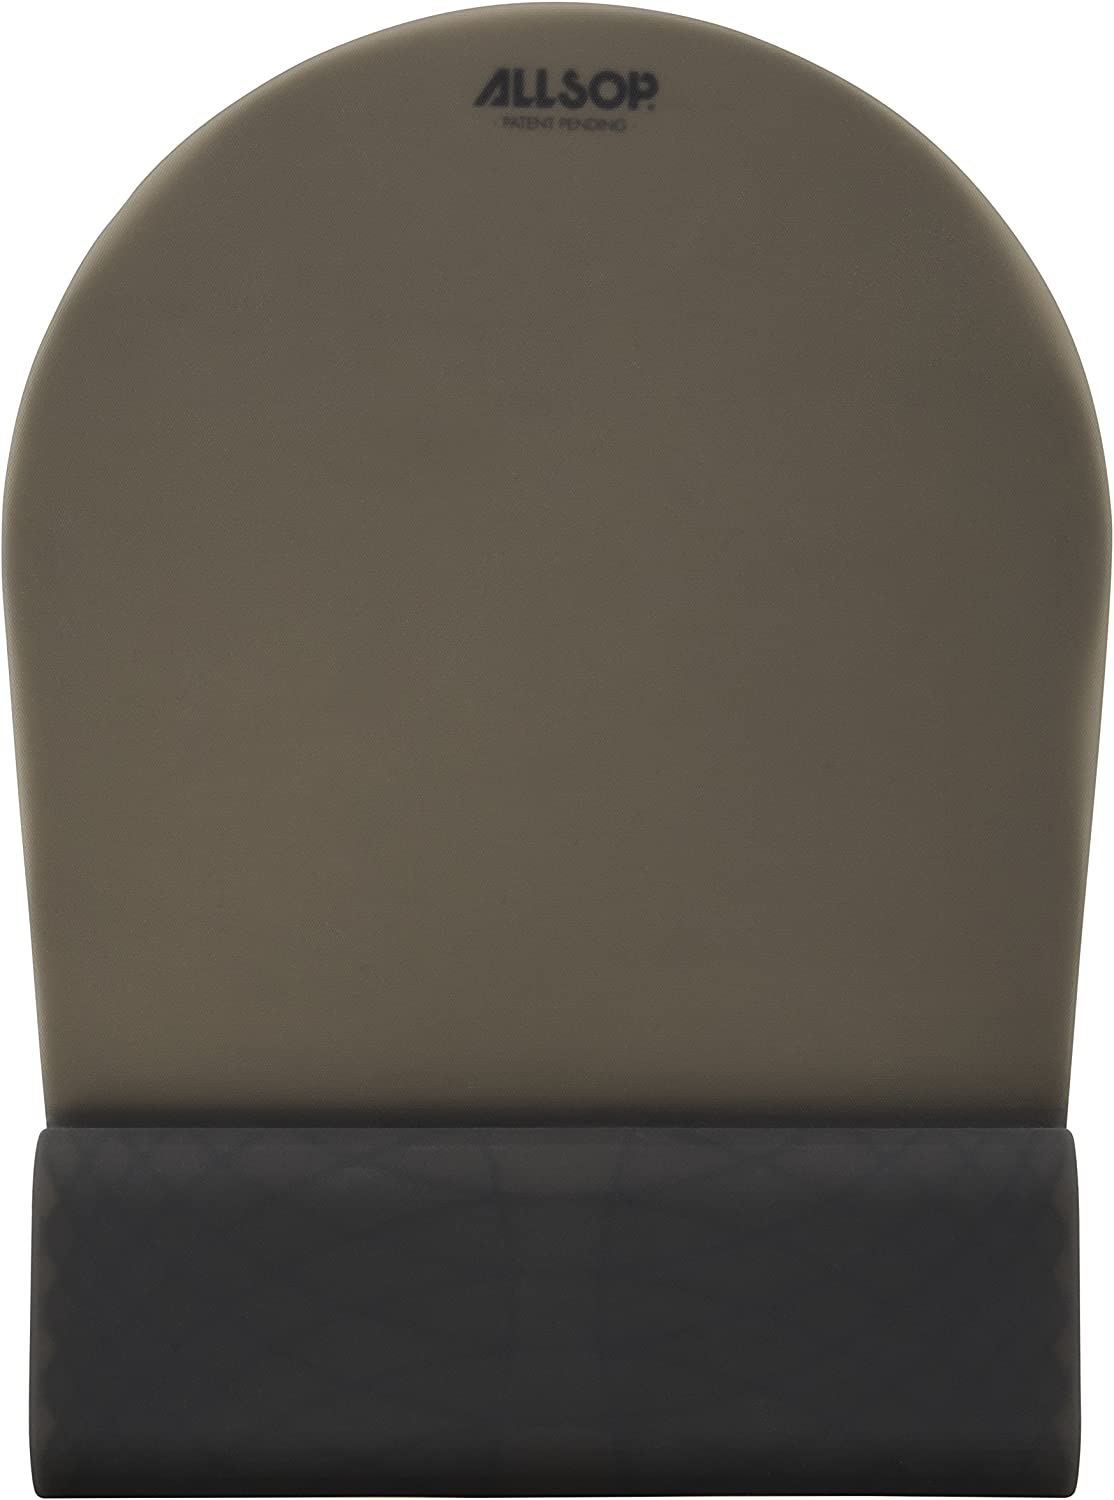 31879 Black Allsop ErgoFlex Mouse Pad with Silicone Grid Wrist Support